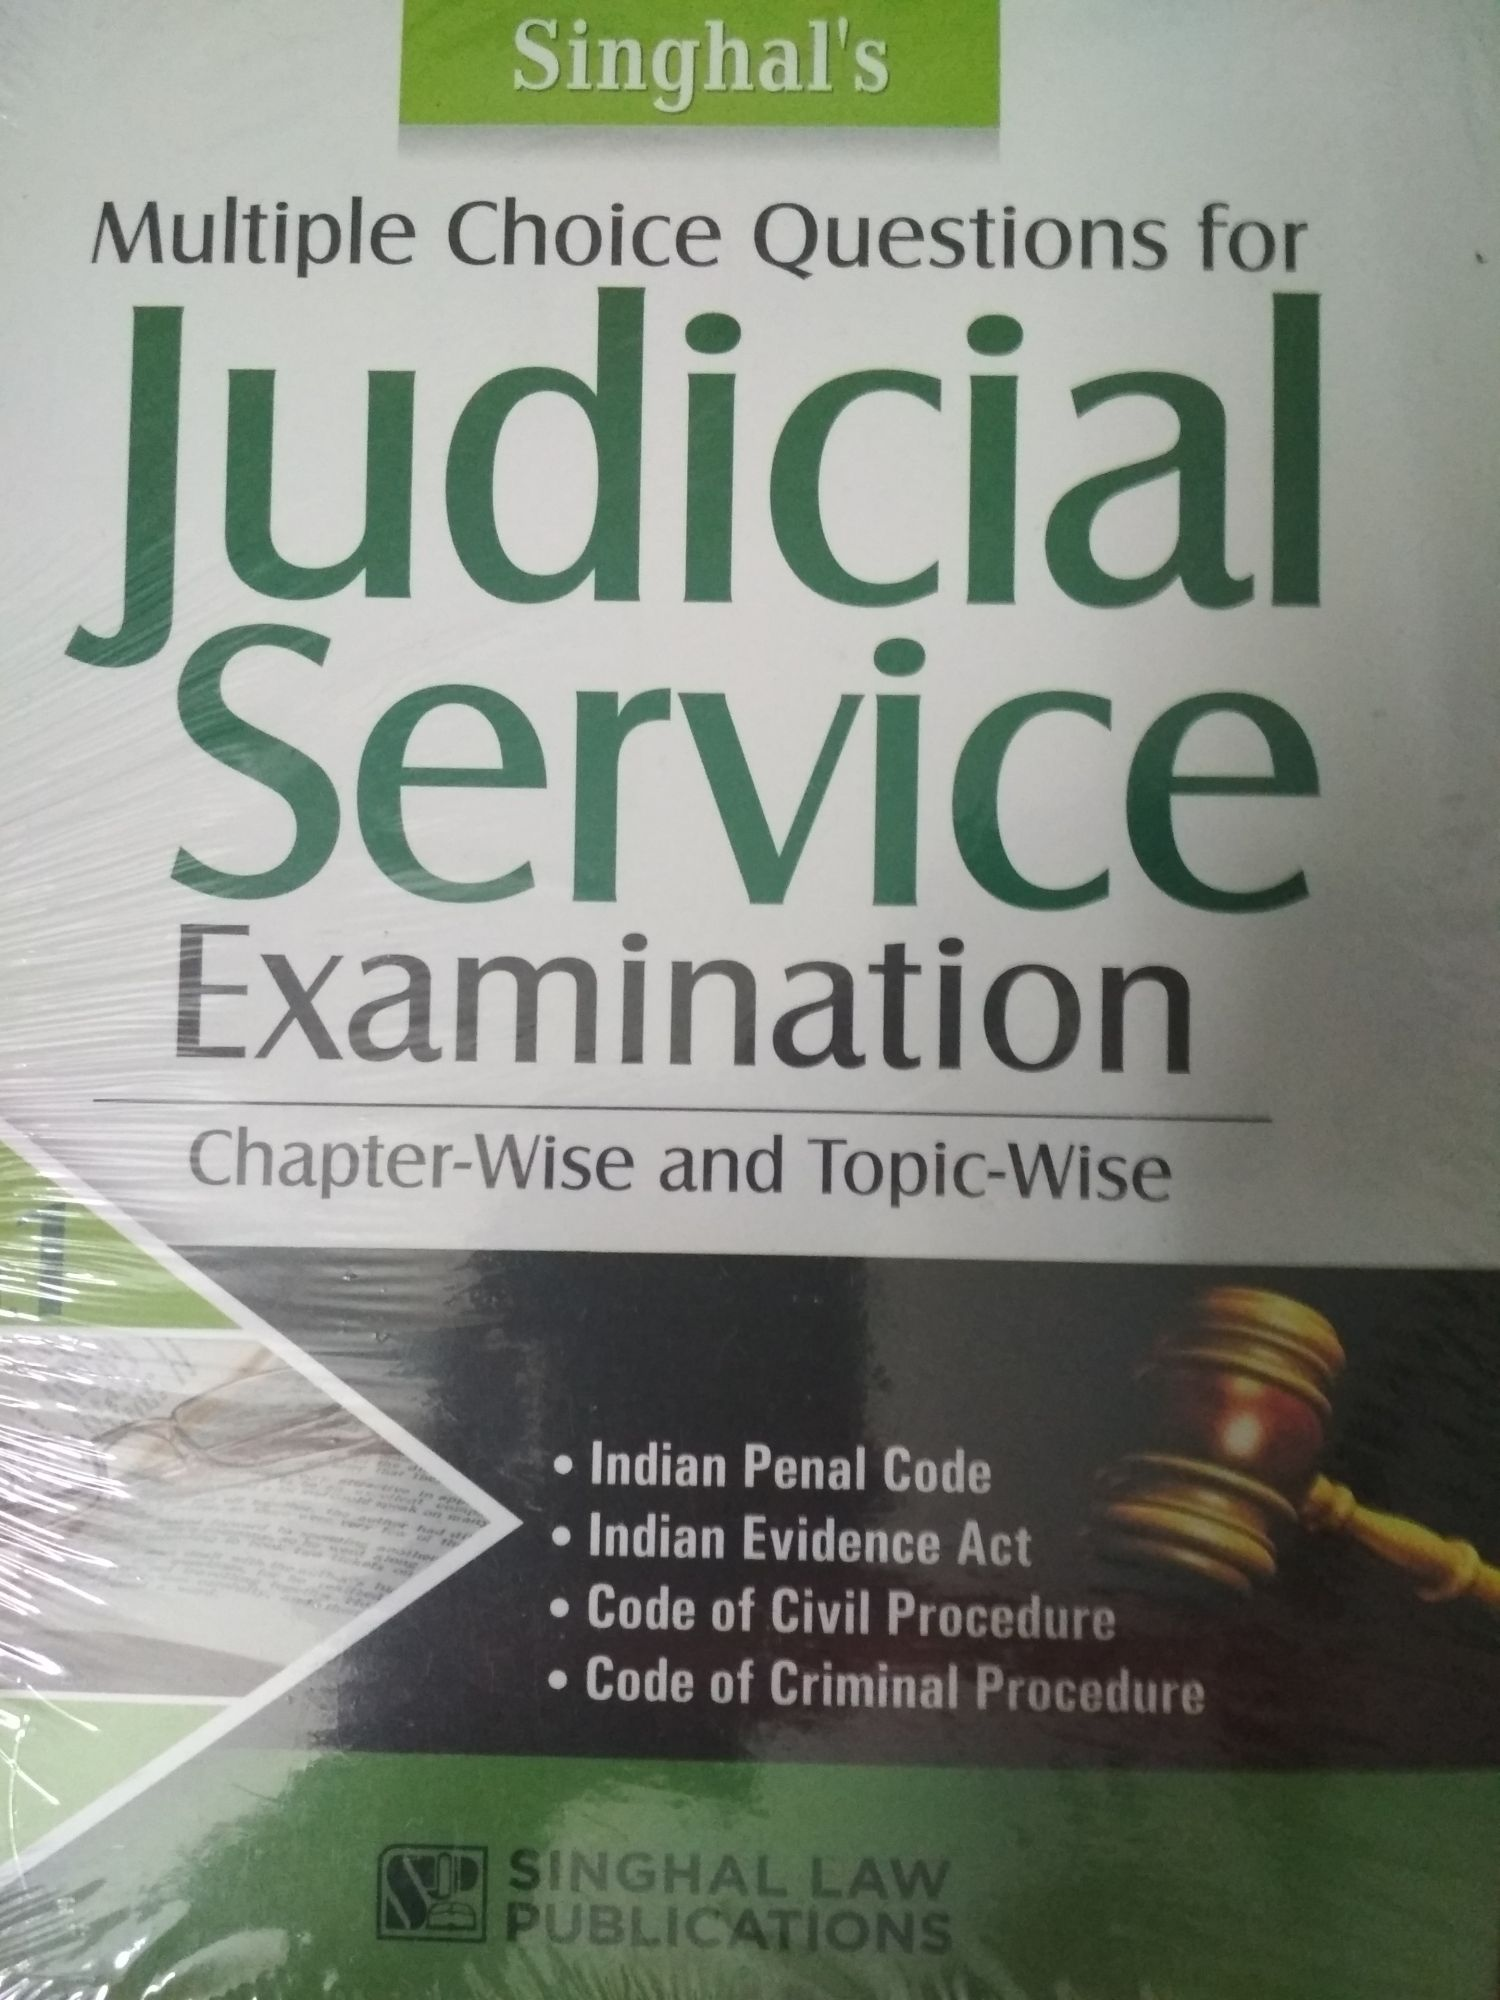 Singhal's Multiple Choice Questions For Judicial Services Examination volume 2